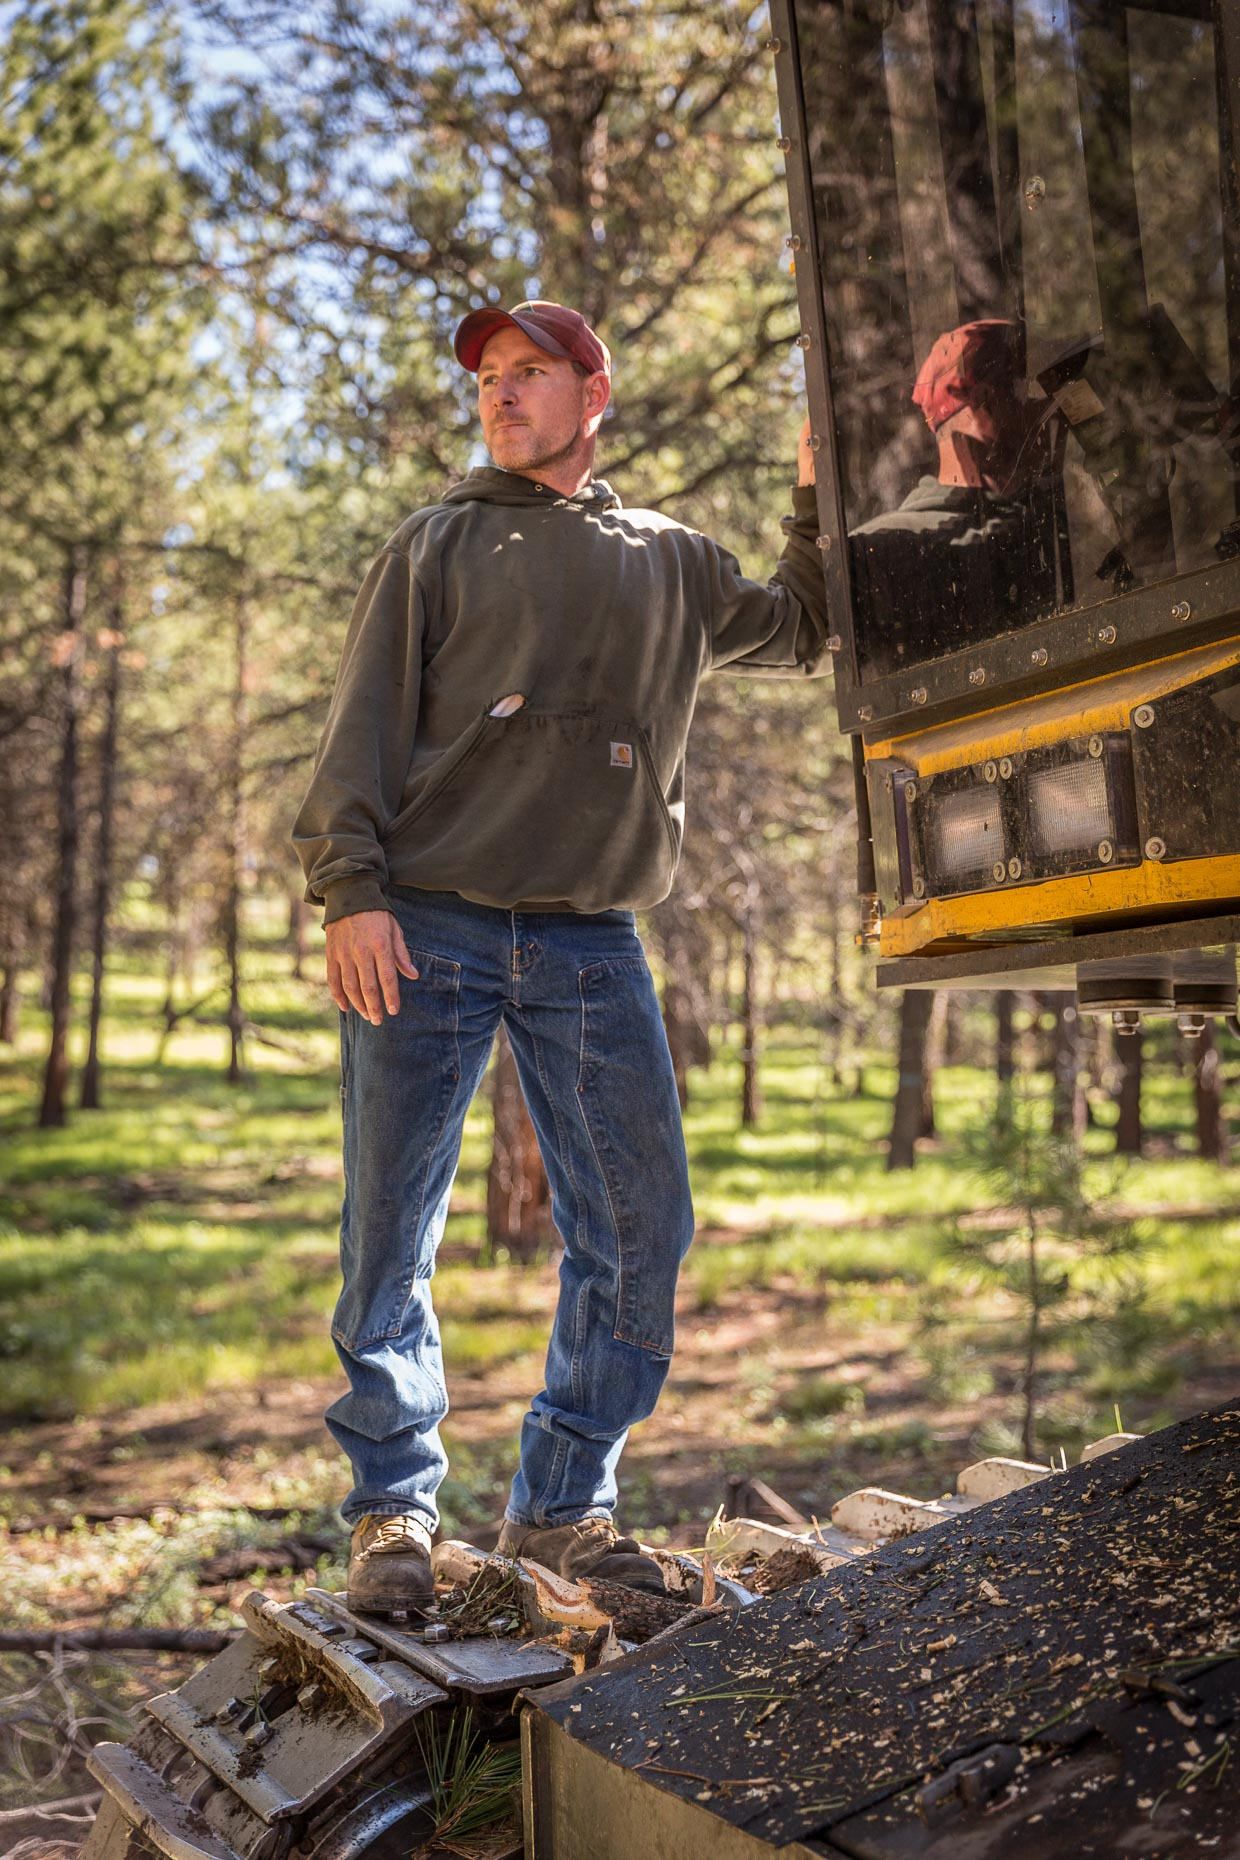 Portrait of man working logging operation standing on machine treads by David Zaitz.